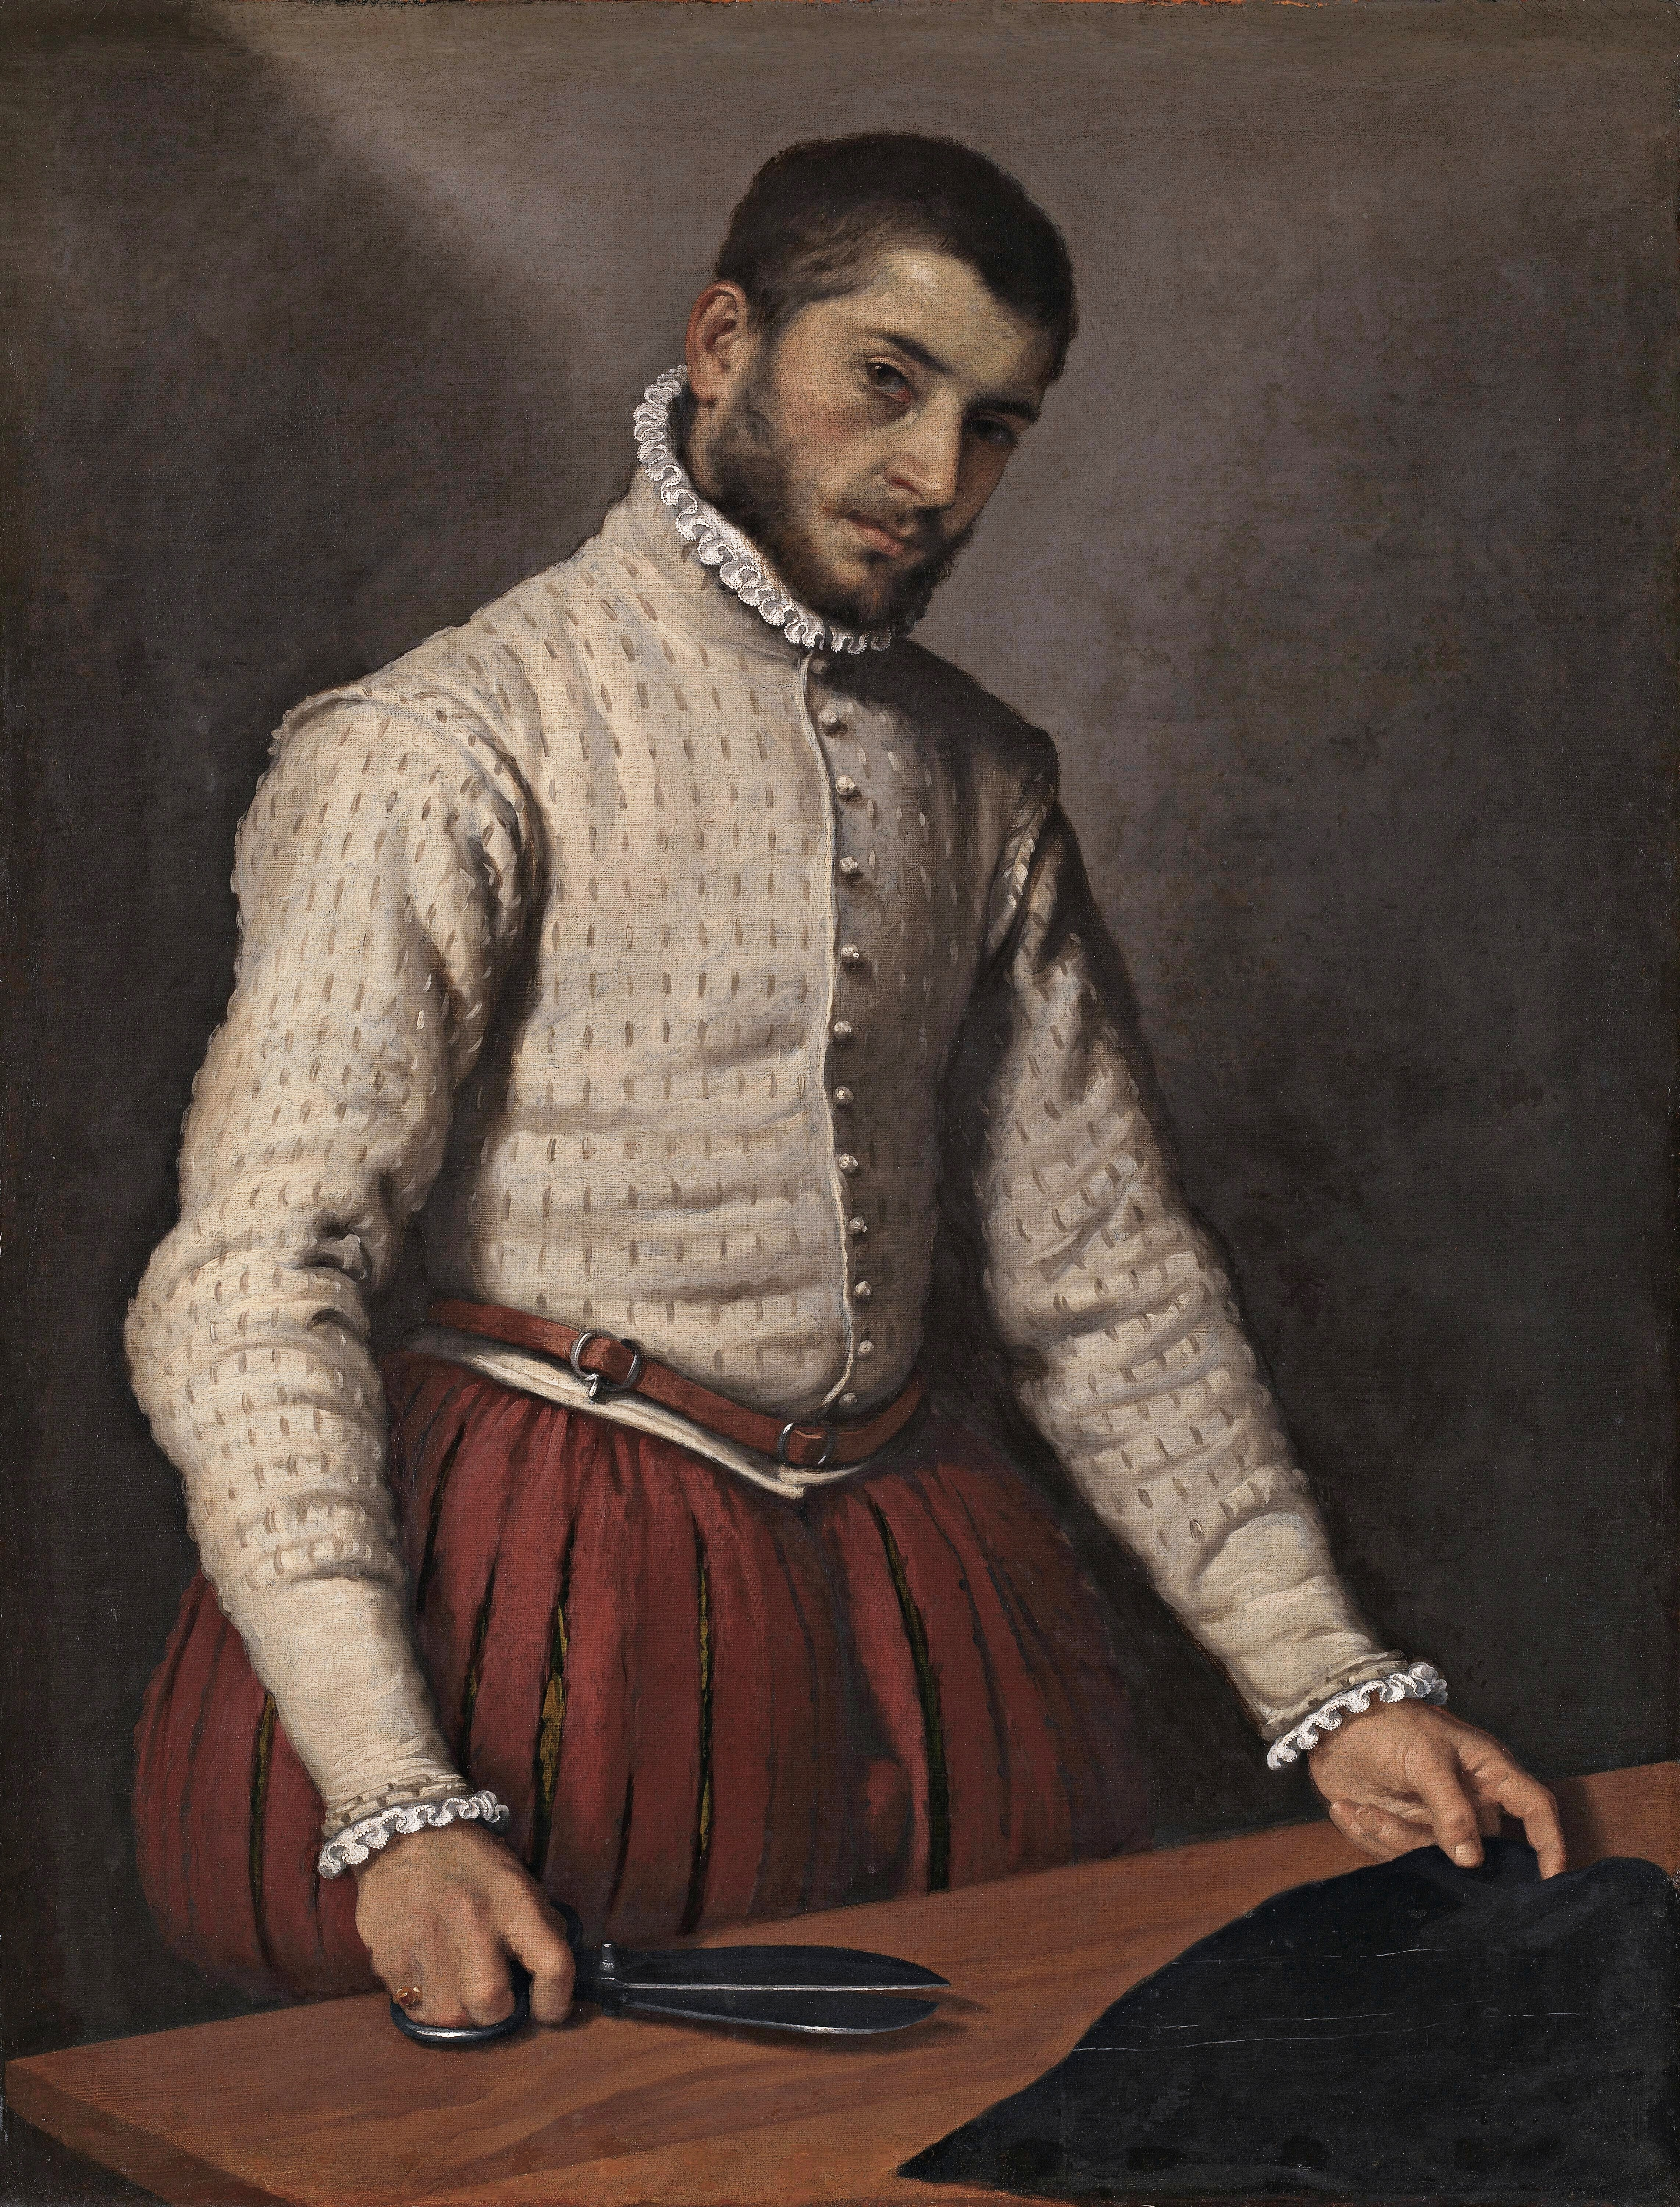 moroni dating site On the dating of moroni 8-9  mormon's second letter to moroni (moroni 9) the dating of mormon's  all research and opinions provided on this site are the.